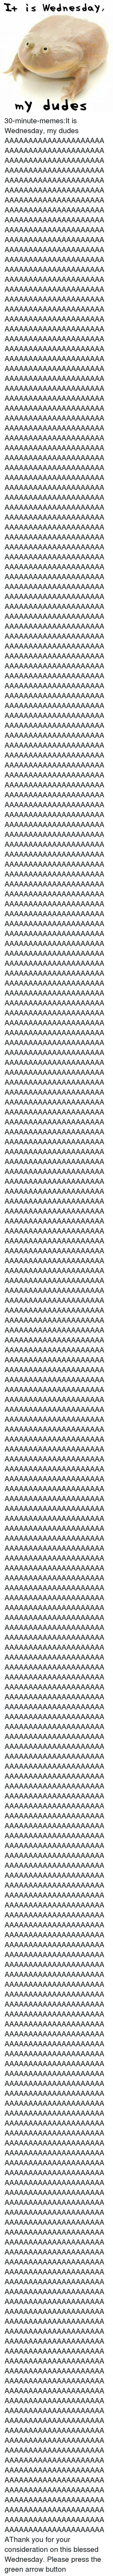 green arrow: I+ is Wednesday  my dudes 30-minute-memes:It is Wednesday, my dudes AAAAAAAAAAAAAAAAAAAAAAAAAAAAAAAAAAAAAAAAAAAAAAAAAAAAAAAAAAAAAAAAAAAAAAAAAAAAAAAAAAAAAAAAAAAAAAAAAAAAAAAAAAAAAAAAAAAAAAAAAAAAAAAAAAAAAAAAAAAAAAAAAAAAAAAAAAAAAAAAAAAAAAAAAAAAAAAAAAAAAAAAAAAAAAAAAAAAAAAAAAAAAAAAAAAAAAAAAAAAAAAAAAAAAAAAAAAAAAAAAAAAAAAAAAAAAAAAAAAAAAAAAAAAAAAAAAAAAAAAAAAAAAAAAAAAAAAAAAAAAAAAAAAAAAAAAAAAAAAAAAAAAAAAAAAAAAAAAAAAAAAAAAAAAAAAAAAAAAAAAAAAAAAAAAAAAAAAAAAAAAAAAAAAAAAAAAAAAAAAAAAAAAAAAAAAAAAAAAAAAAAAAAAAAAAAAAAAAAAAAAAAAAAAAAAAAAAAAAAAAAAAAAAAAAAAAAAAAAAAAAAAAAAAAAAAAAAAAAAAAAAAAAAAAAAAAAAAAAAAAAAAAAAAAAAAAAAAAAAAAAAAAAAAAAAAAAAAAAAAAAAAAAAAAAAAAAAAAAAAAAAAAAAAAAAAAAAAAAAAAAAAAAAAAAAAAAAAAAAAAAAAAAAAAAAAAAAAAAAAAAAAAAAAAAAAAAAAAAAAAAAAAAAAAAAAAAAAAAAAAAAAAAAAAAAAAAAAAAAAAAAAAAAAAAAAAAAAAAAAAAAAAAAAAAAAAAAAAAAAAAAAAAAAAAAAAAAAAAAAAAAAAAAAAAAAAAAAAAAAAAAAAAAAAAAAAAAAAAAAAAAAAAAAAAAAAAAAAAAAAAAAAAAAAAAAAAAAAAAAAAAAAAAAAAAAAAAAAAAAAAAAAAAAAAAAAAAAAAAAAAAAAAAAAAAAAAAAAAAAAAAAAAAAAAAAAAAAAAAAAAAAAAAAAAAAAAAAAAAAAAAAAAAAAAAAAAAAAAAAAAAAAAAAAAAAAAAAAAAAAAAAAAAAAAAAAAAAAAAAAAAAAAAAAAAAAAAAAAAAAAAAAAAAAAAAAAAAAAAAAAAAAAAAAAAAAAAAAAAAAAAAAAAAAAAAAAAAAAAAAAAAAAAAAAAAAAAAAAAAAAAAAAAAAAAAAAAAAAAAAAAAAAAAAAAAAAAAAAAAAAAAAAAAAAAAAAAAAAAAAAAAAAAAAAAAAAAAAAAAAAAAAAAAAAAAAAAAAAAAAAAAAAAAAAAAAAAAAAAAAAAAAAAAAAAAAAAAAAAAAAAAAAAAAAAAAAAAAAAAAAAAAAAAAAAAAAAAAAAAAAAAAAAAAAAAAAAAAAAAAAAAAAAAAAAAAAAAAAAAAAAAAAAAAAAAAAAAAAAAAAAAAAAAAAAAAAAAAAAAAAAAAAAAAAAAAAAAAAAAAAAAAAAAAAAAAAAAAAAAAAAAAAAAAAAAAAAAAAAAAAAAAAAAAAAAAAAAAAAAAAAAAAAAAAAAAAAAAAAAAAAAAAAAAAAAAAAAAAAAAAAAAAAAAAAAAAAAAAAAAAAAAAAAAAAAAAAAAAAAAAAAAAAAAAAAAAAAAAAAAAAAAAAAAAAAAAAAAAAAAAAAAAAAAAAAAAAAAAAAAAAAAAAAAAAAAAAAAAAAAAAAAAAAAAAAAAAAAAAAAAAAAAAAAAAAAAAAAAAAAAAAAAAAAAAAAAAAAAAAAAAAAAAAAAAAAAAAAAAAAAAAAAAAAAAAAAAAAAAAAAAAAAAAAAAAAAAAAAAAAAAAAAAAAAAAAAAAAAAAAAAAAAAAAAAAAAAAAAAAAAAAAAAAAAAAAAAAAAAAAAAAAAAAAAAAAAAAAAAAAAAAAAAAAAAAAAAAAAAAAAAAAAAAAAAAAAAAAAAAAAAAAAAAAAAAAAAAAAAAAAAAAAAAAAAAAAAAAAAAAAAAAAAAAAAAAAAAAAAAAAAAAAAAAAAAAAAAAAA